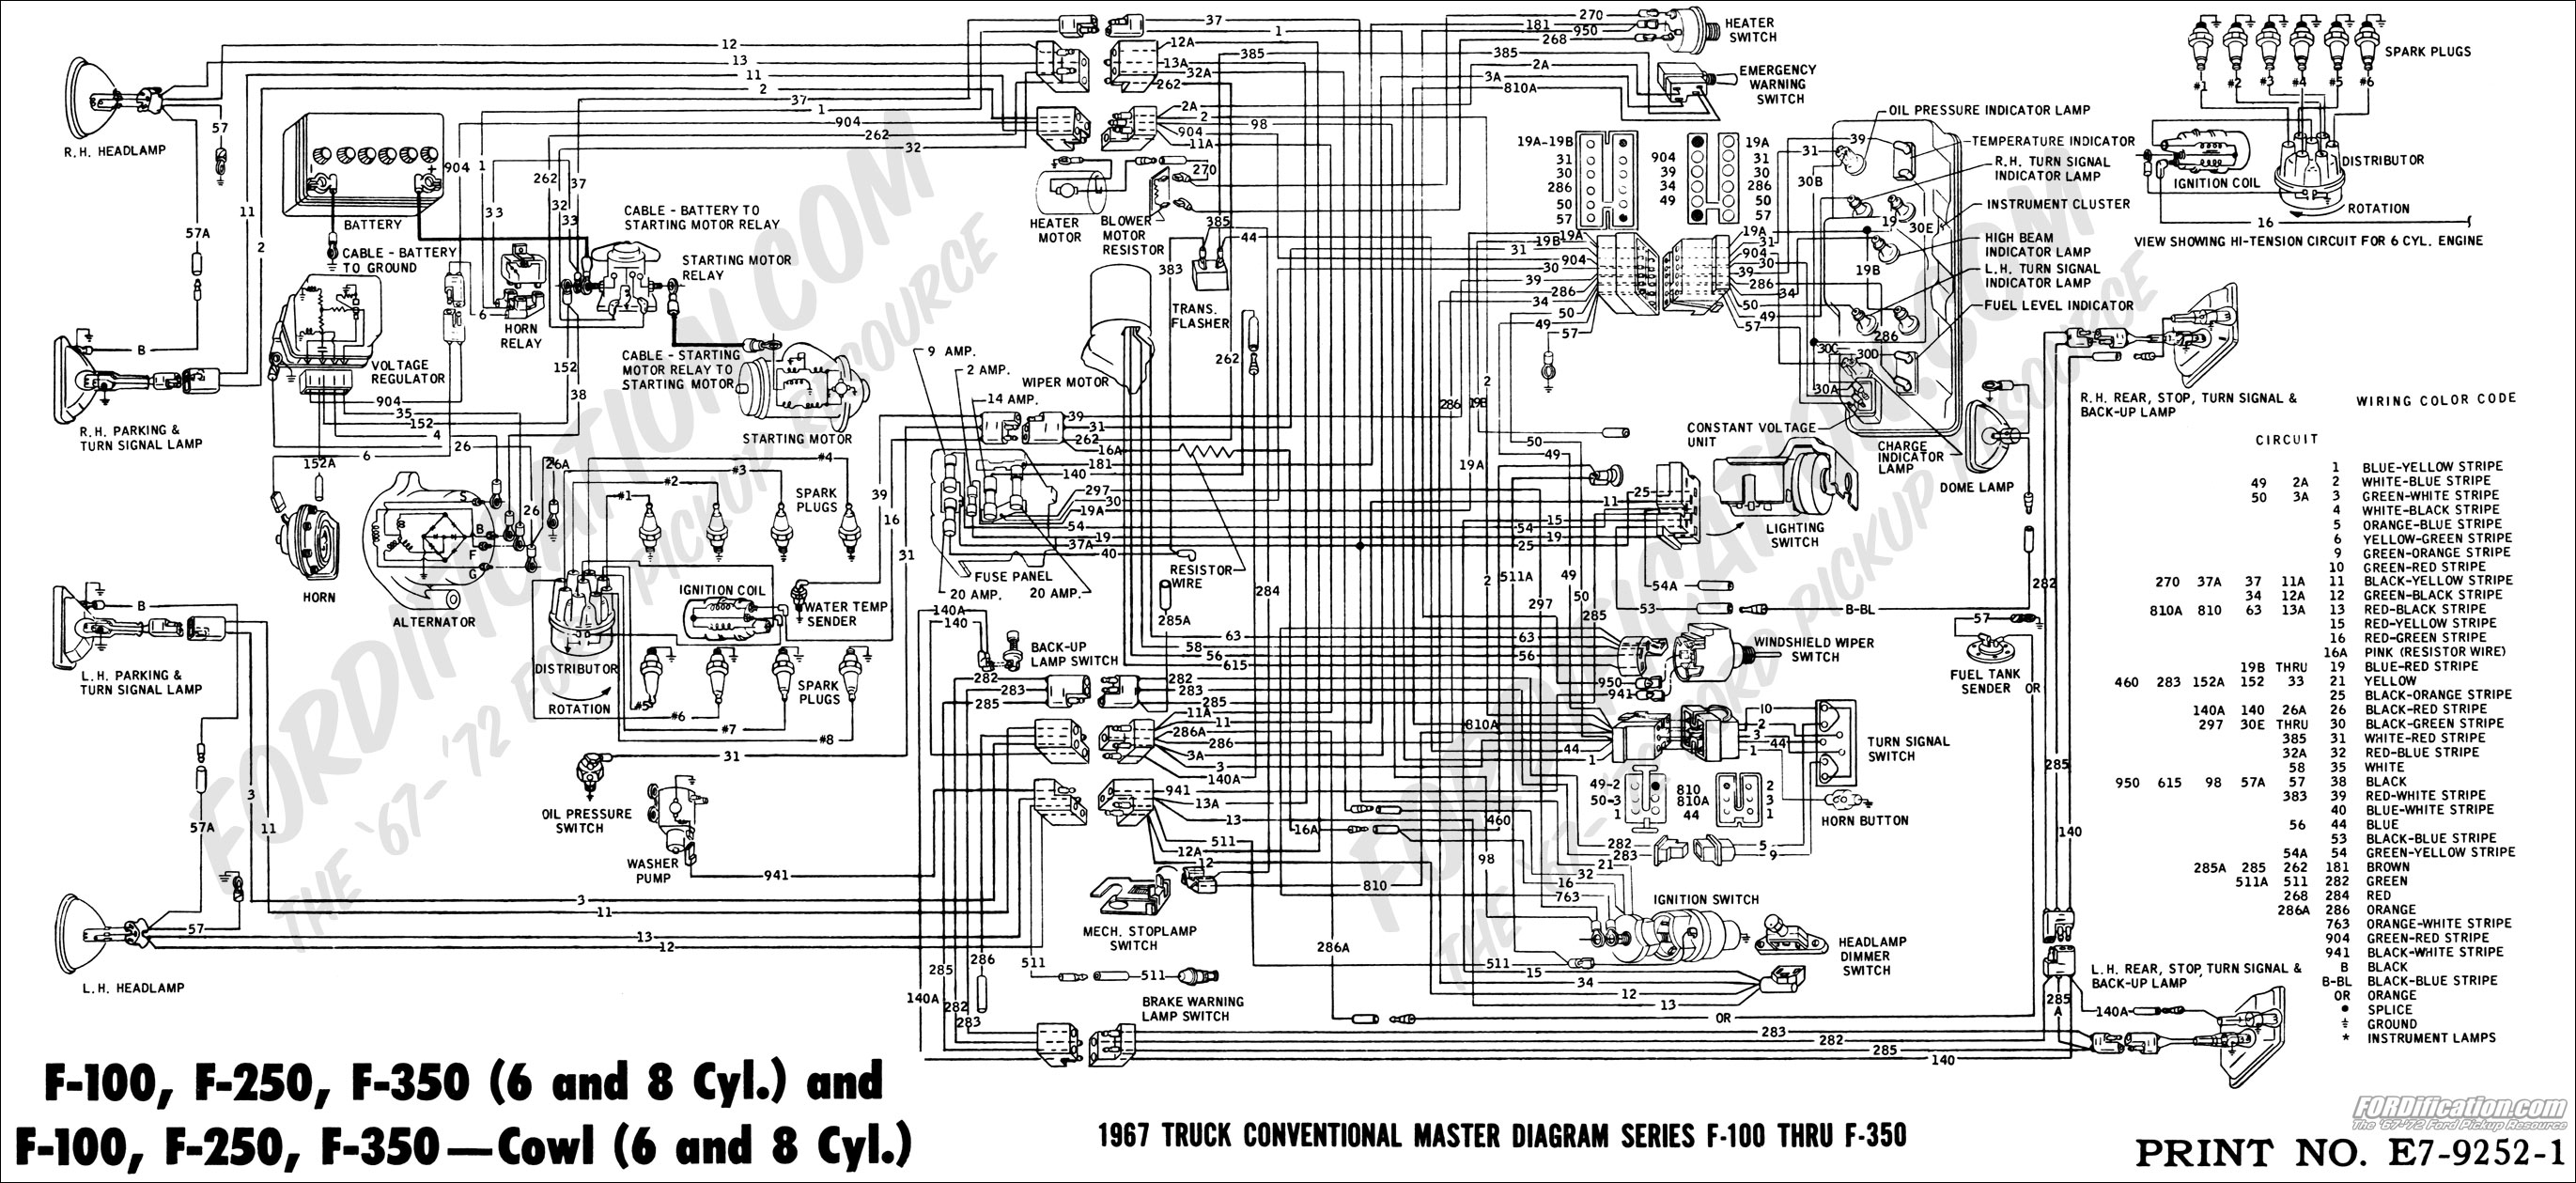 67masterdiagram ford truck technical drawings and schematics section h wiring diagram for communication at crackthecode.co